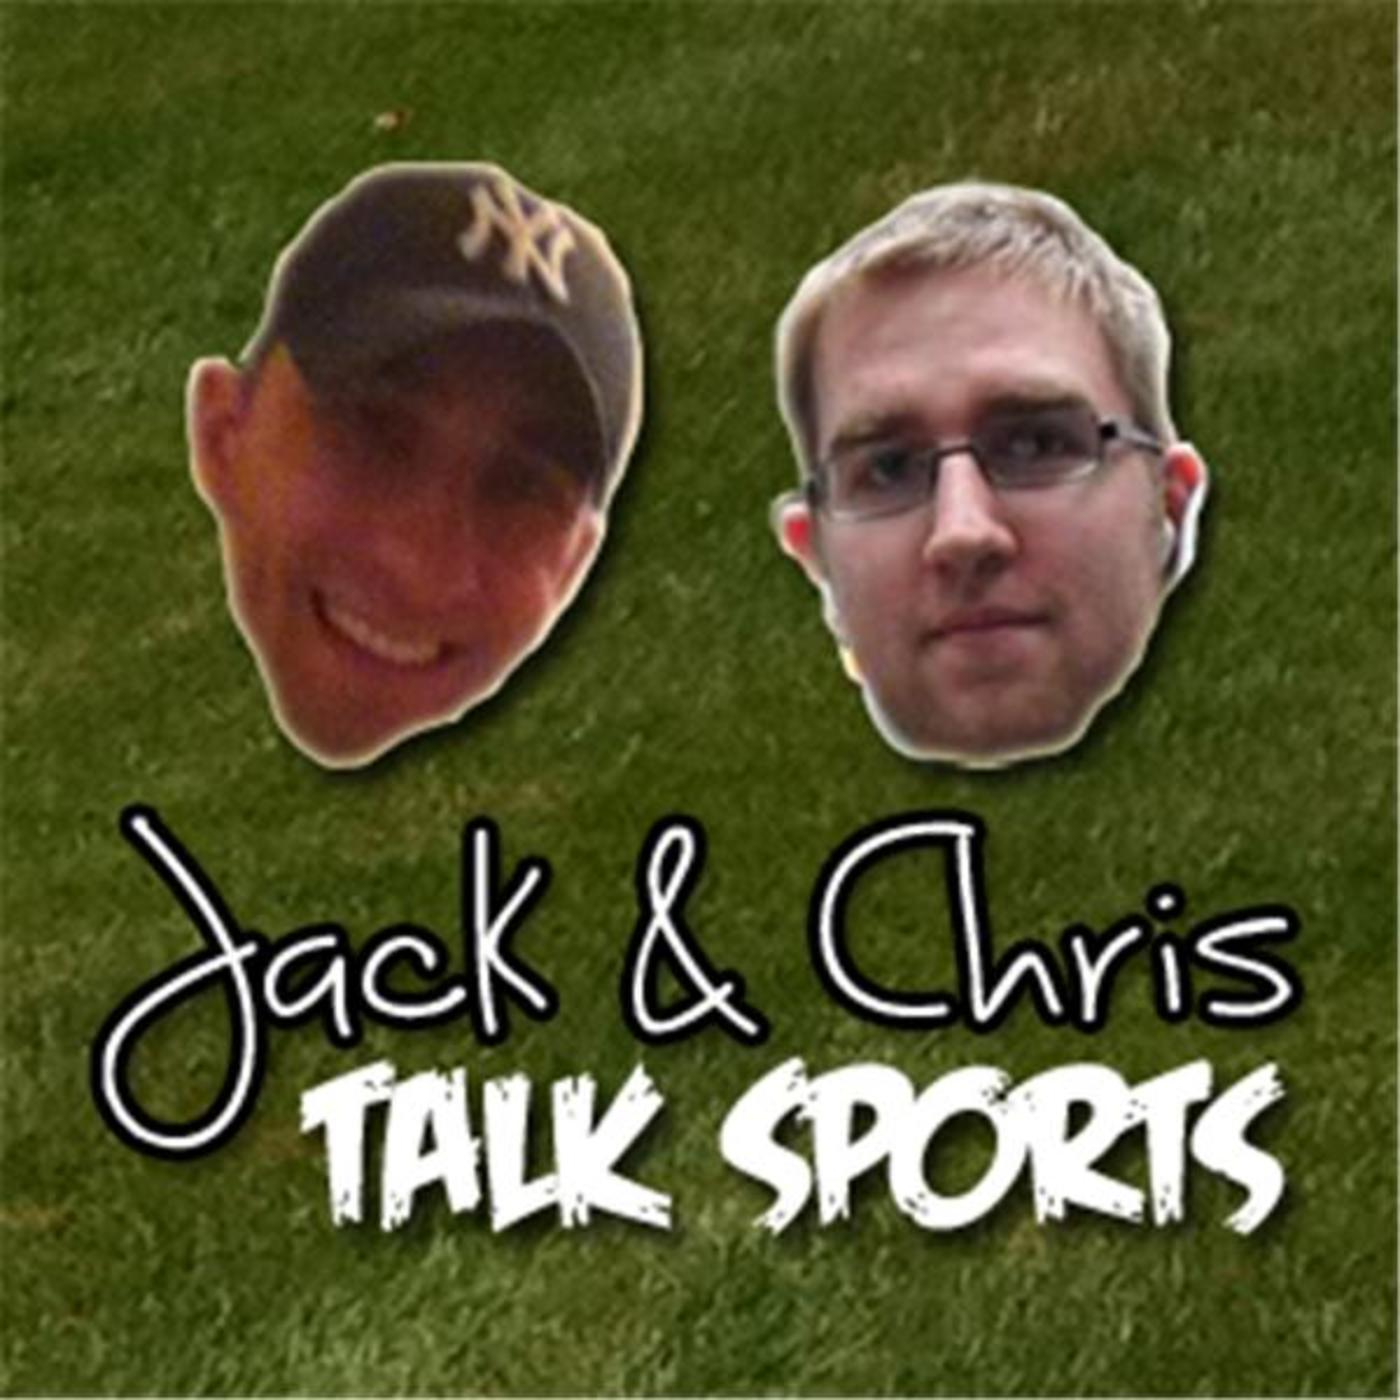 Jack and Chris Talk Sports